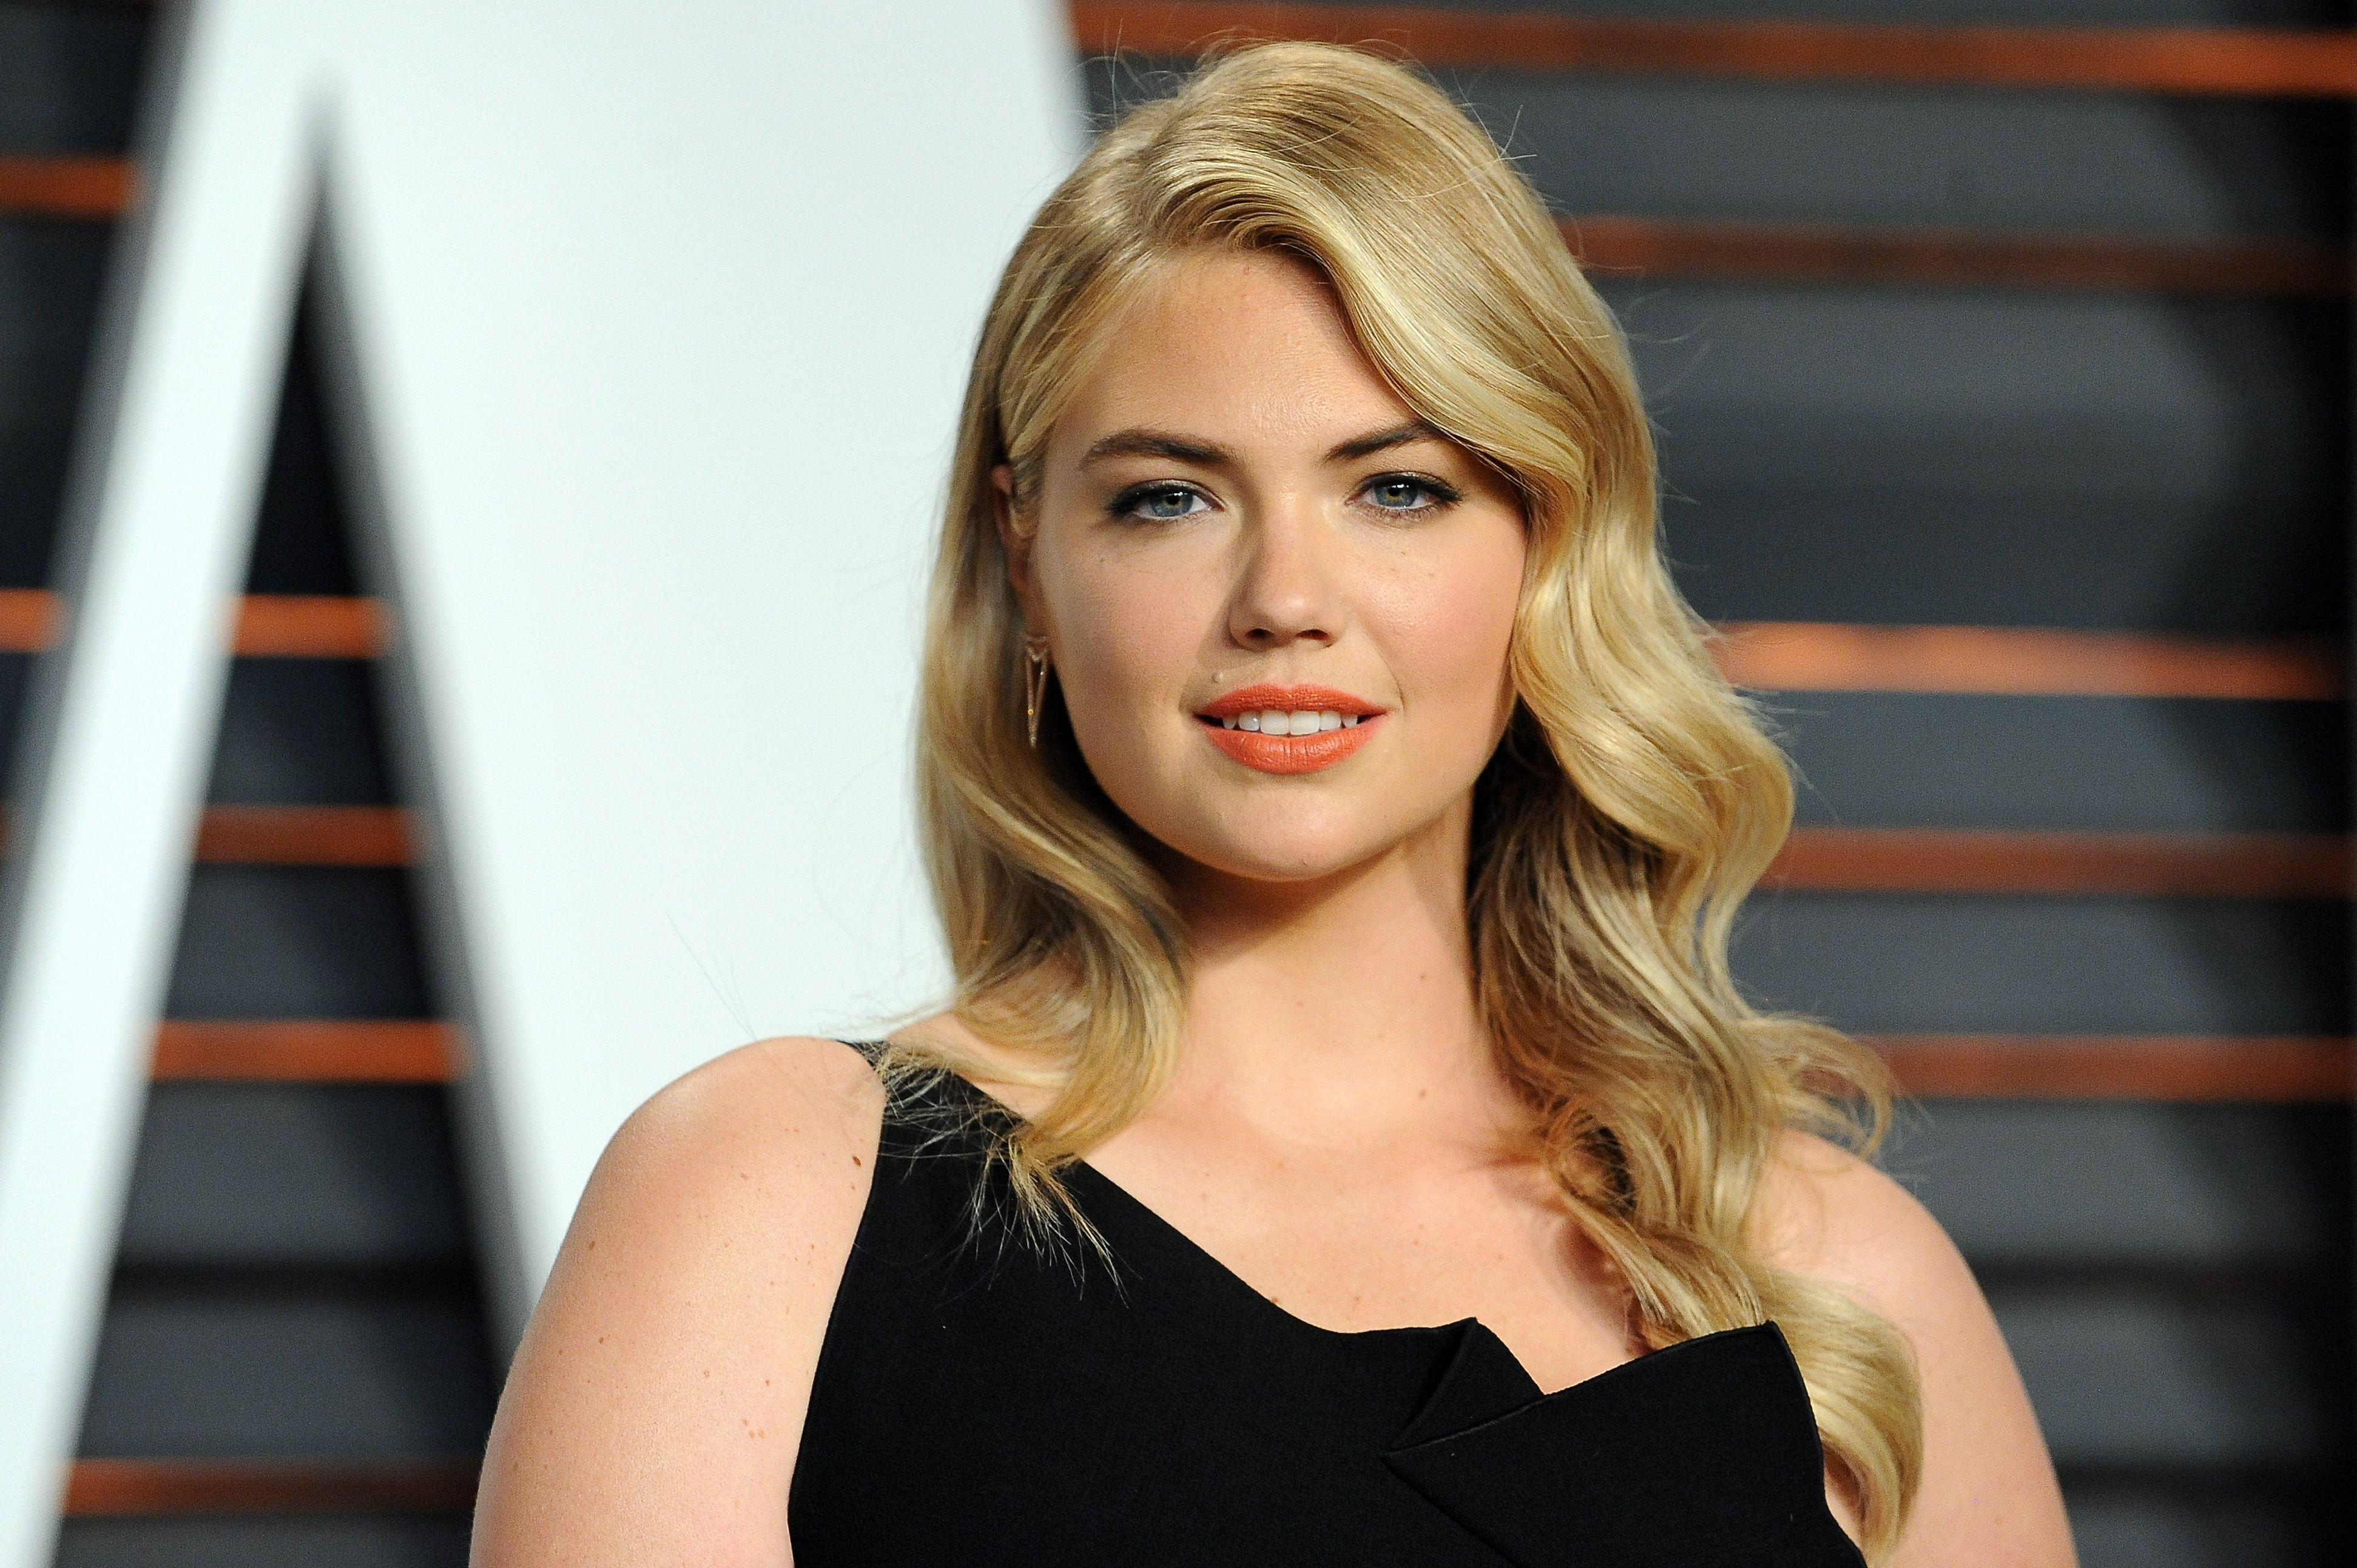 Kate Upton wore a naked dress at her wedding and the photos are absolutely stunning